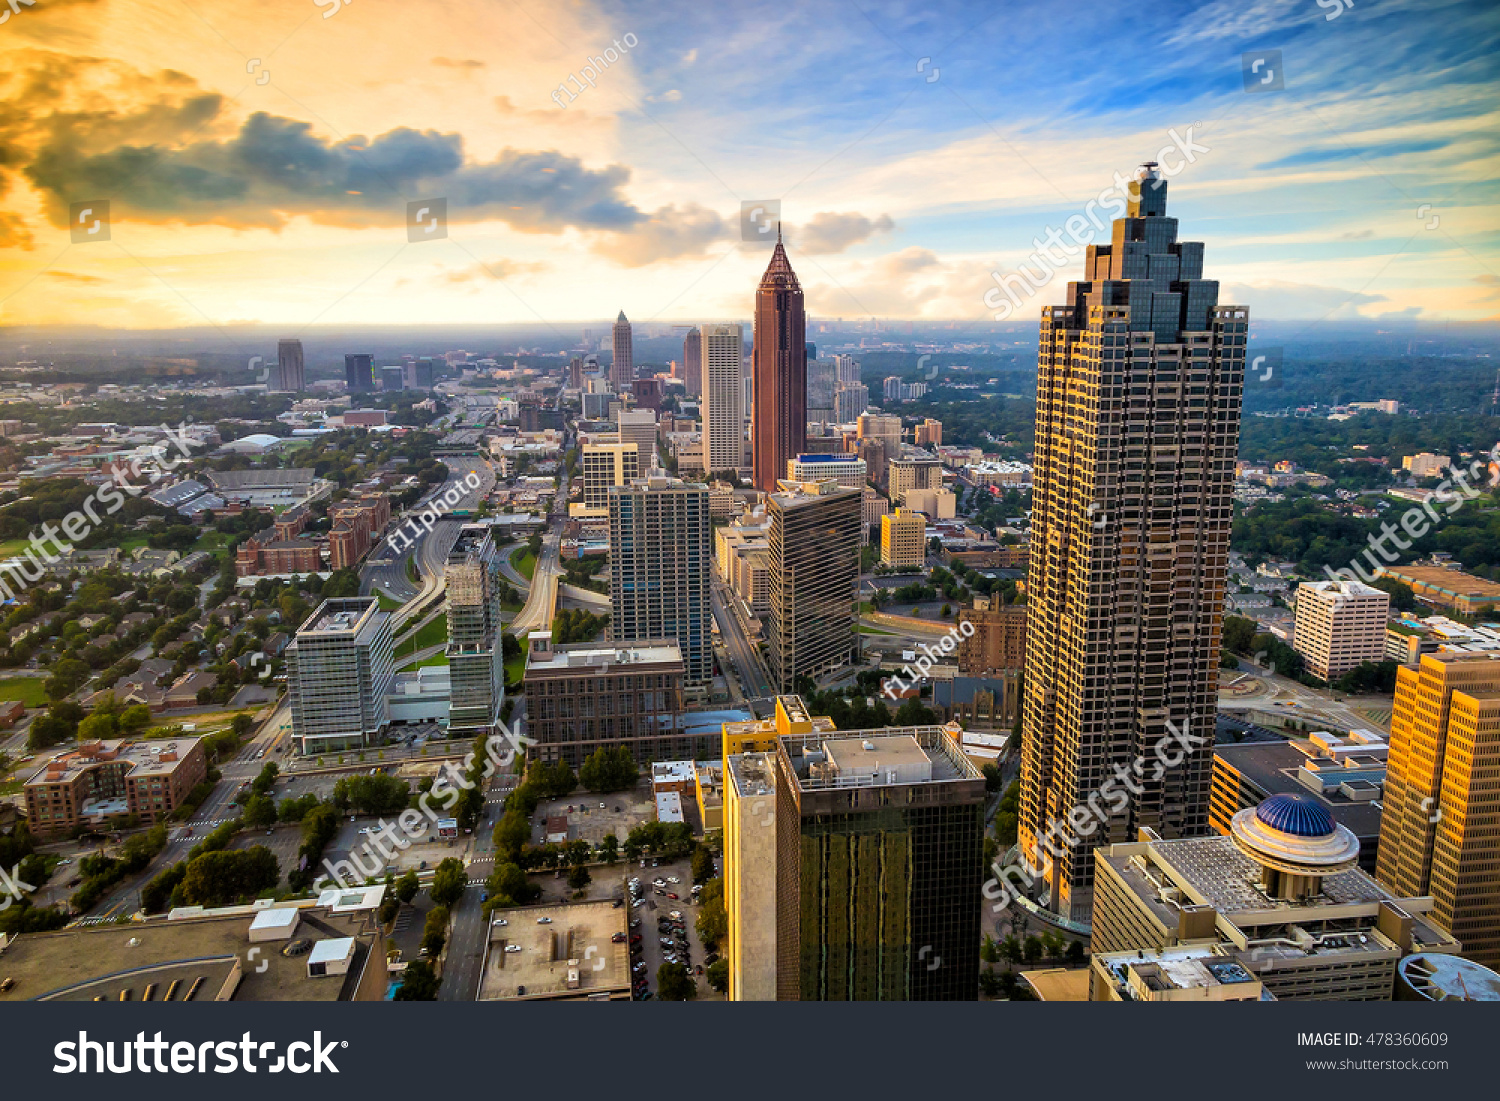 skyline downtown atlanta georgia usa stock photo 478360609 shutterstock. Black Bedroom Furniture Sets. Home Design Ideas